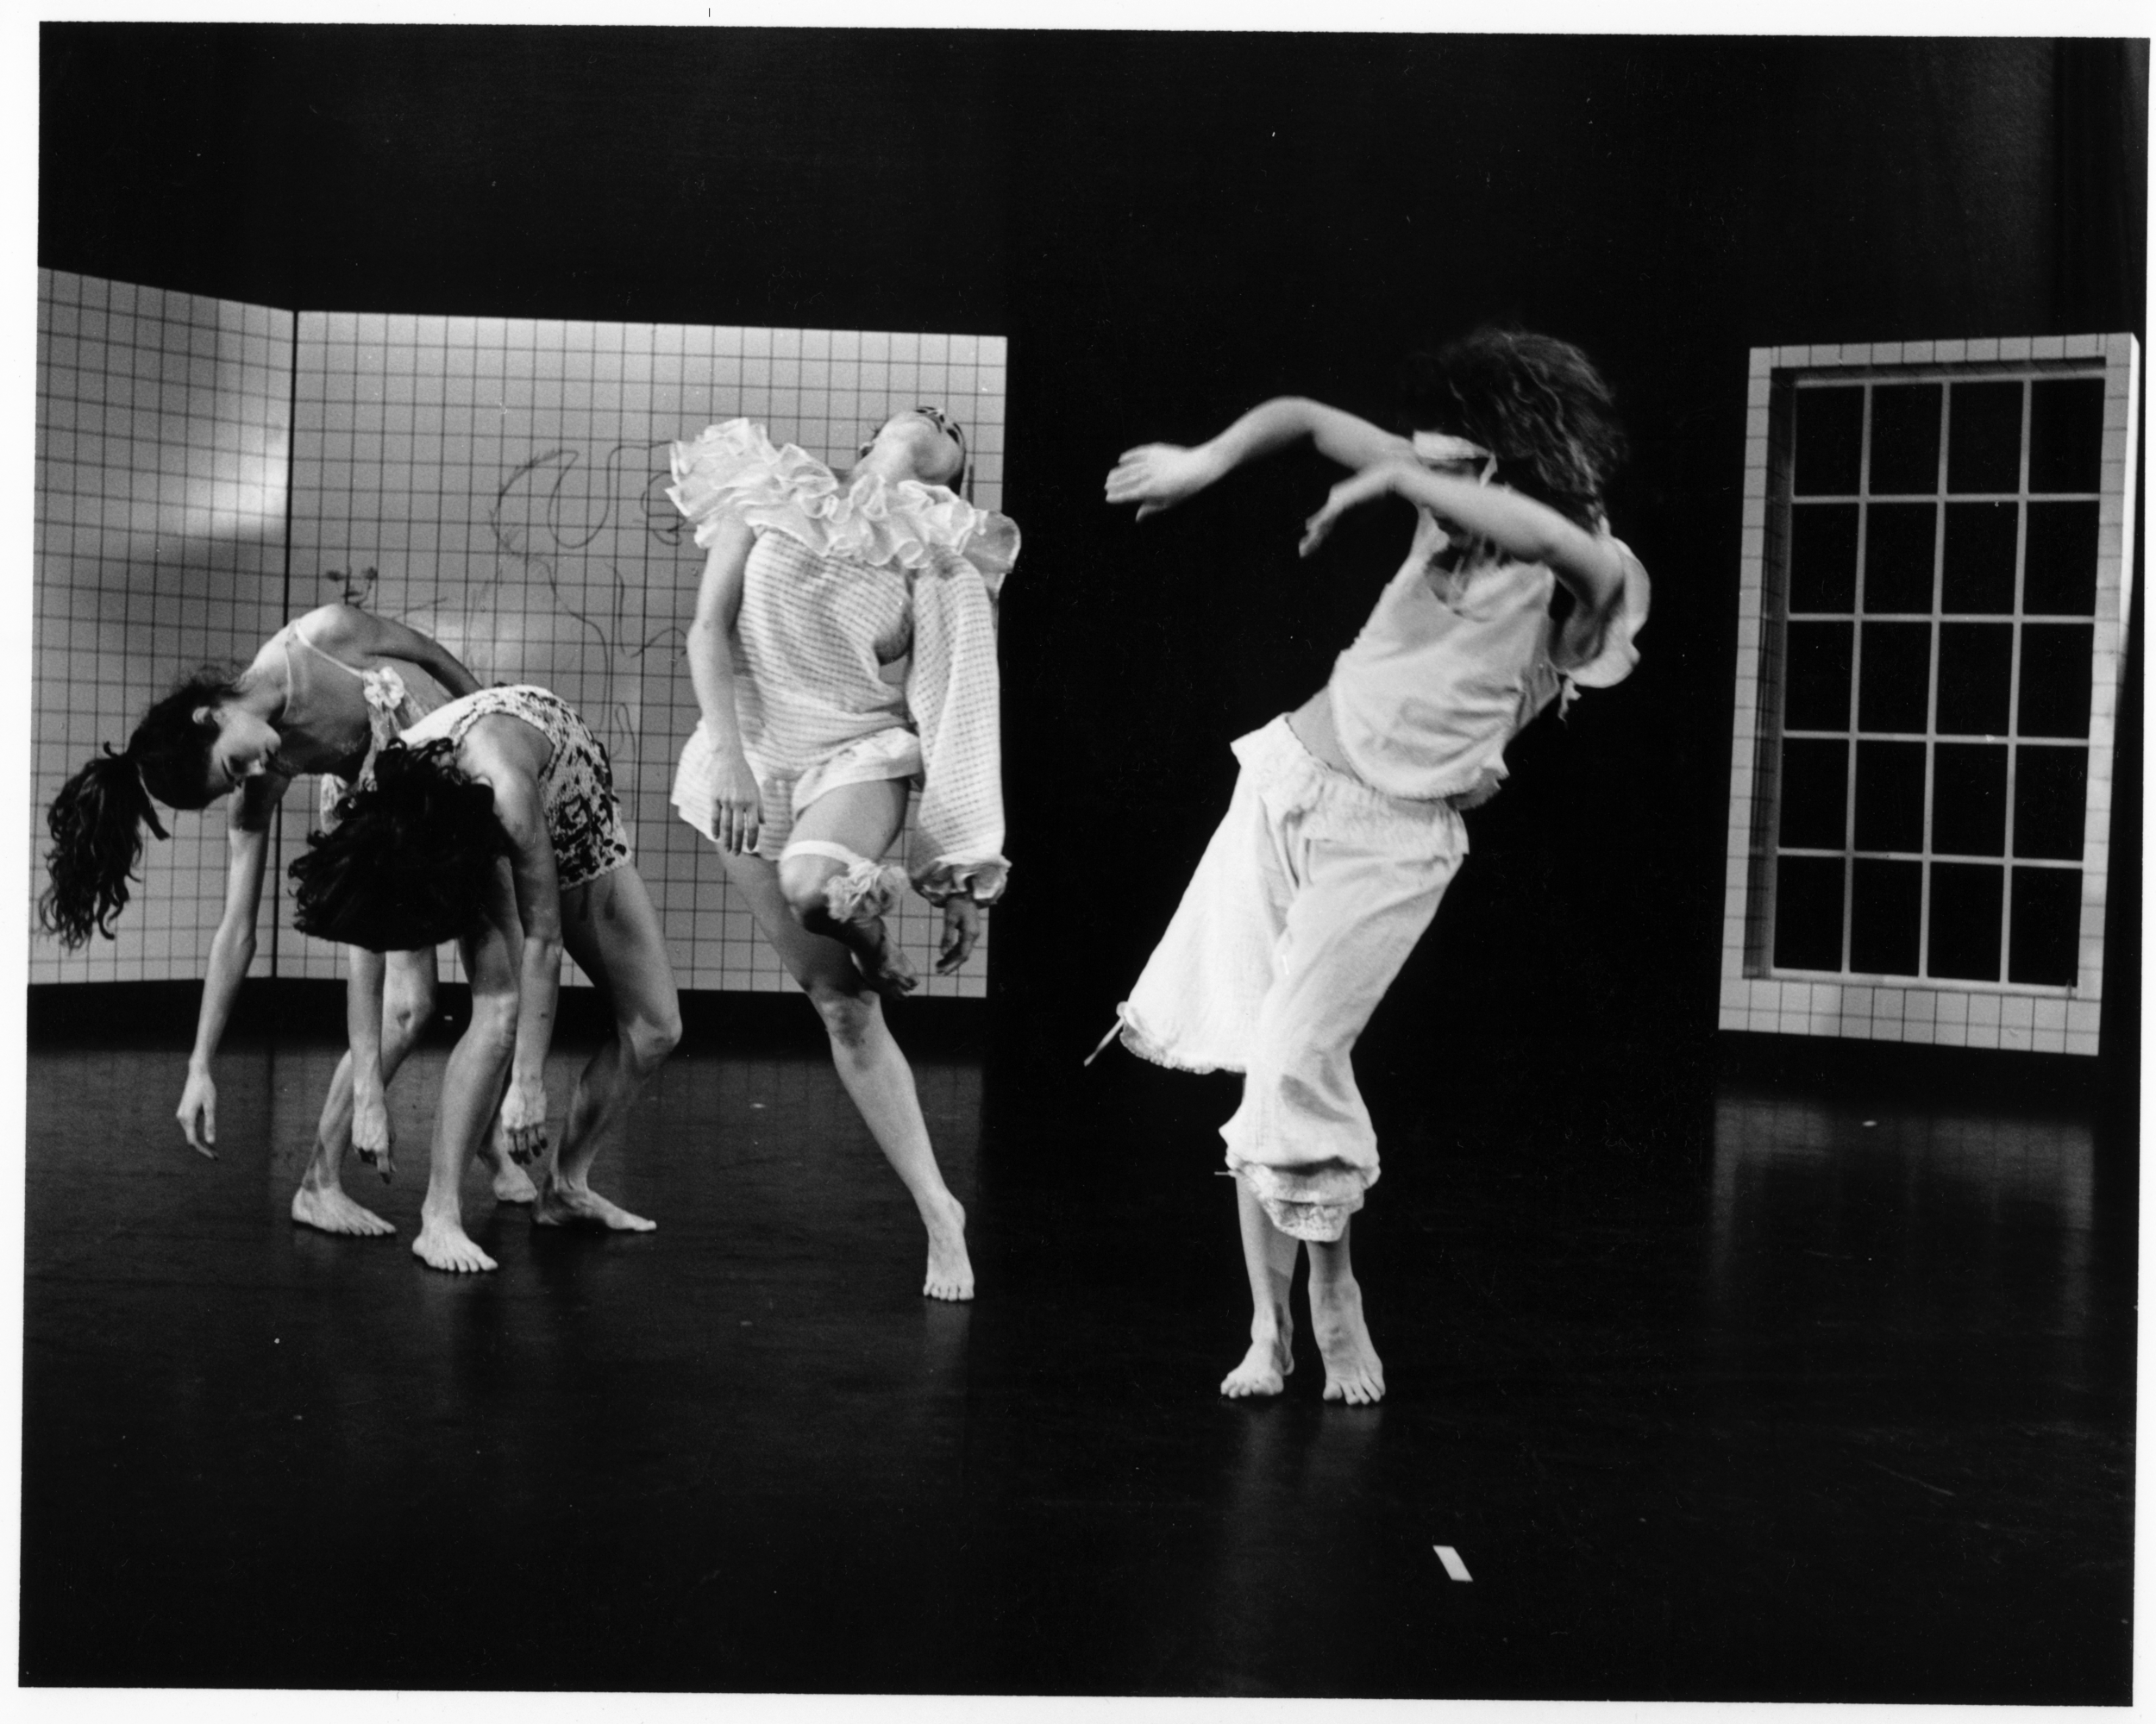 Quartet for Cannibals (1981) - Set to Wes Wragget's haunting score for accordion and tape,Quartet for Cannibalsis a choreographic interpretation of ideas and images from the work of Susan Sontag, particularly her book Illness as Metaphor. Working with four extraordinary dancers (Wendy Chiles, Roberta Mohler, Claudia Moore, Jeannie Teillet) I investigated the pathology, sociology and mythology of four diseases, each emblematic of its era: hysteria, cholera, consumption, and cancer. Together we created a dark and strange dance with currents of absurd humour flowing throughout.Initially presented in a festival of 10 Toronto Independent Choreographers produced by Pavlychenko Studio (Kathryn Brown & Susan Cash, Artistic Directors),Quartet for Cannibalswas a favourite with audiences and critics.Also in this historic festival at Nathan Cohen Theatre, YPT, were Anna Blewchamp, Kathryn Brown, Susan Cash, Murrary Darroch, Nancy Ferguson, Gabby Micelli (Kamino), Susan McNaughton, Claudia Moore and David Wood.Photographer: Dave Davis